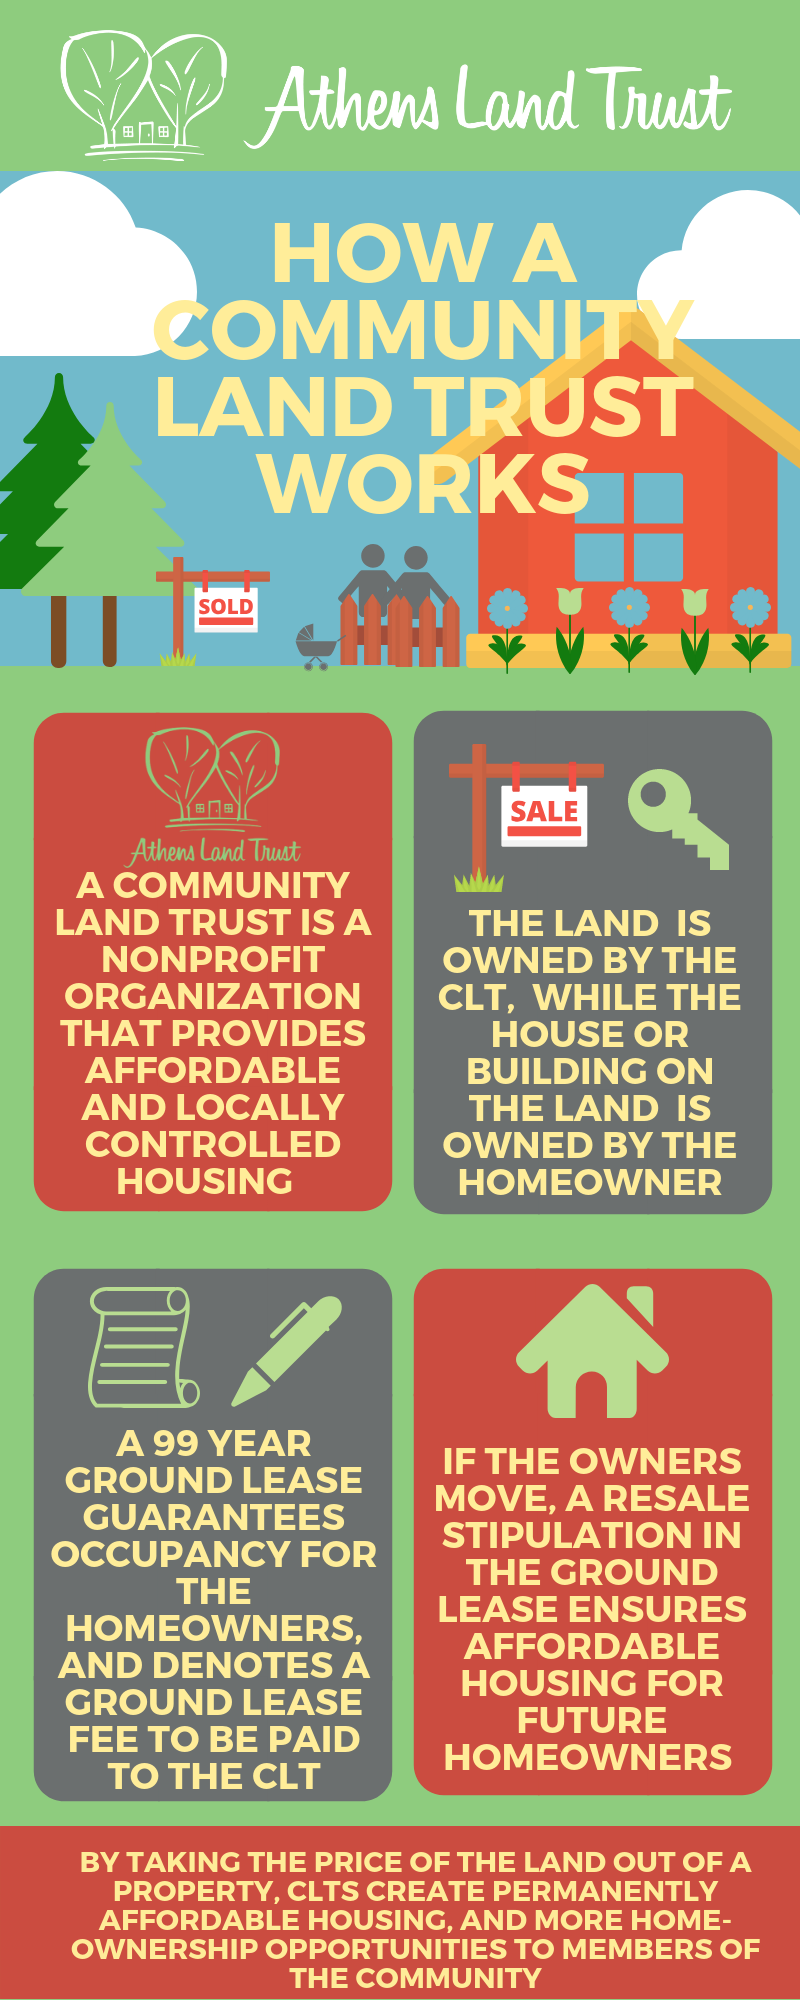 By taking the price of the land out of a property, CLTs like Athens Land Trust create permanently affordable housing, and more homeownership opportunities to members of the community.